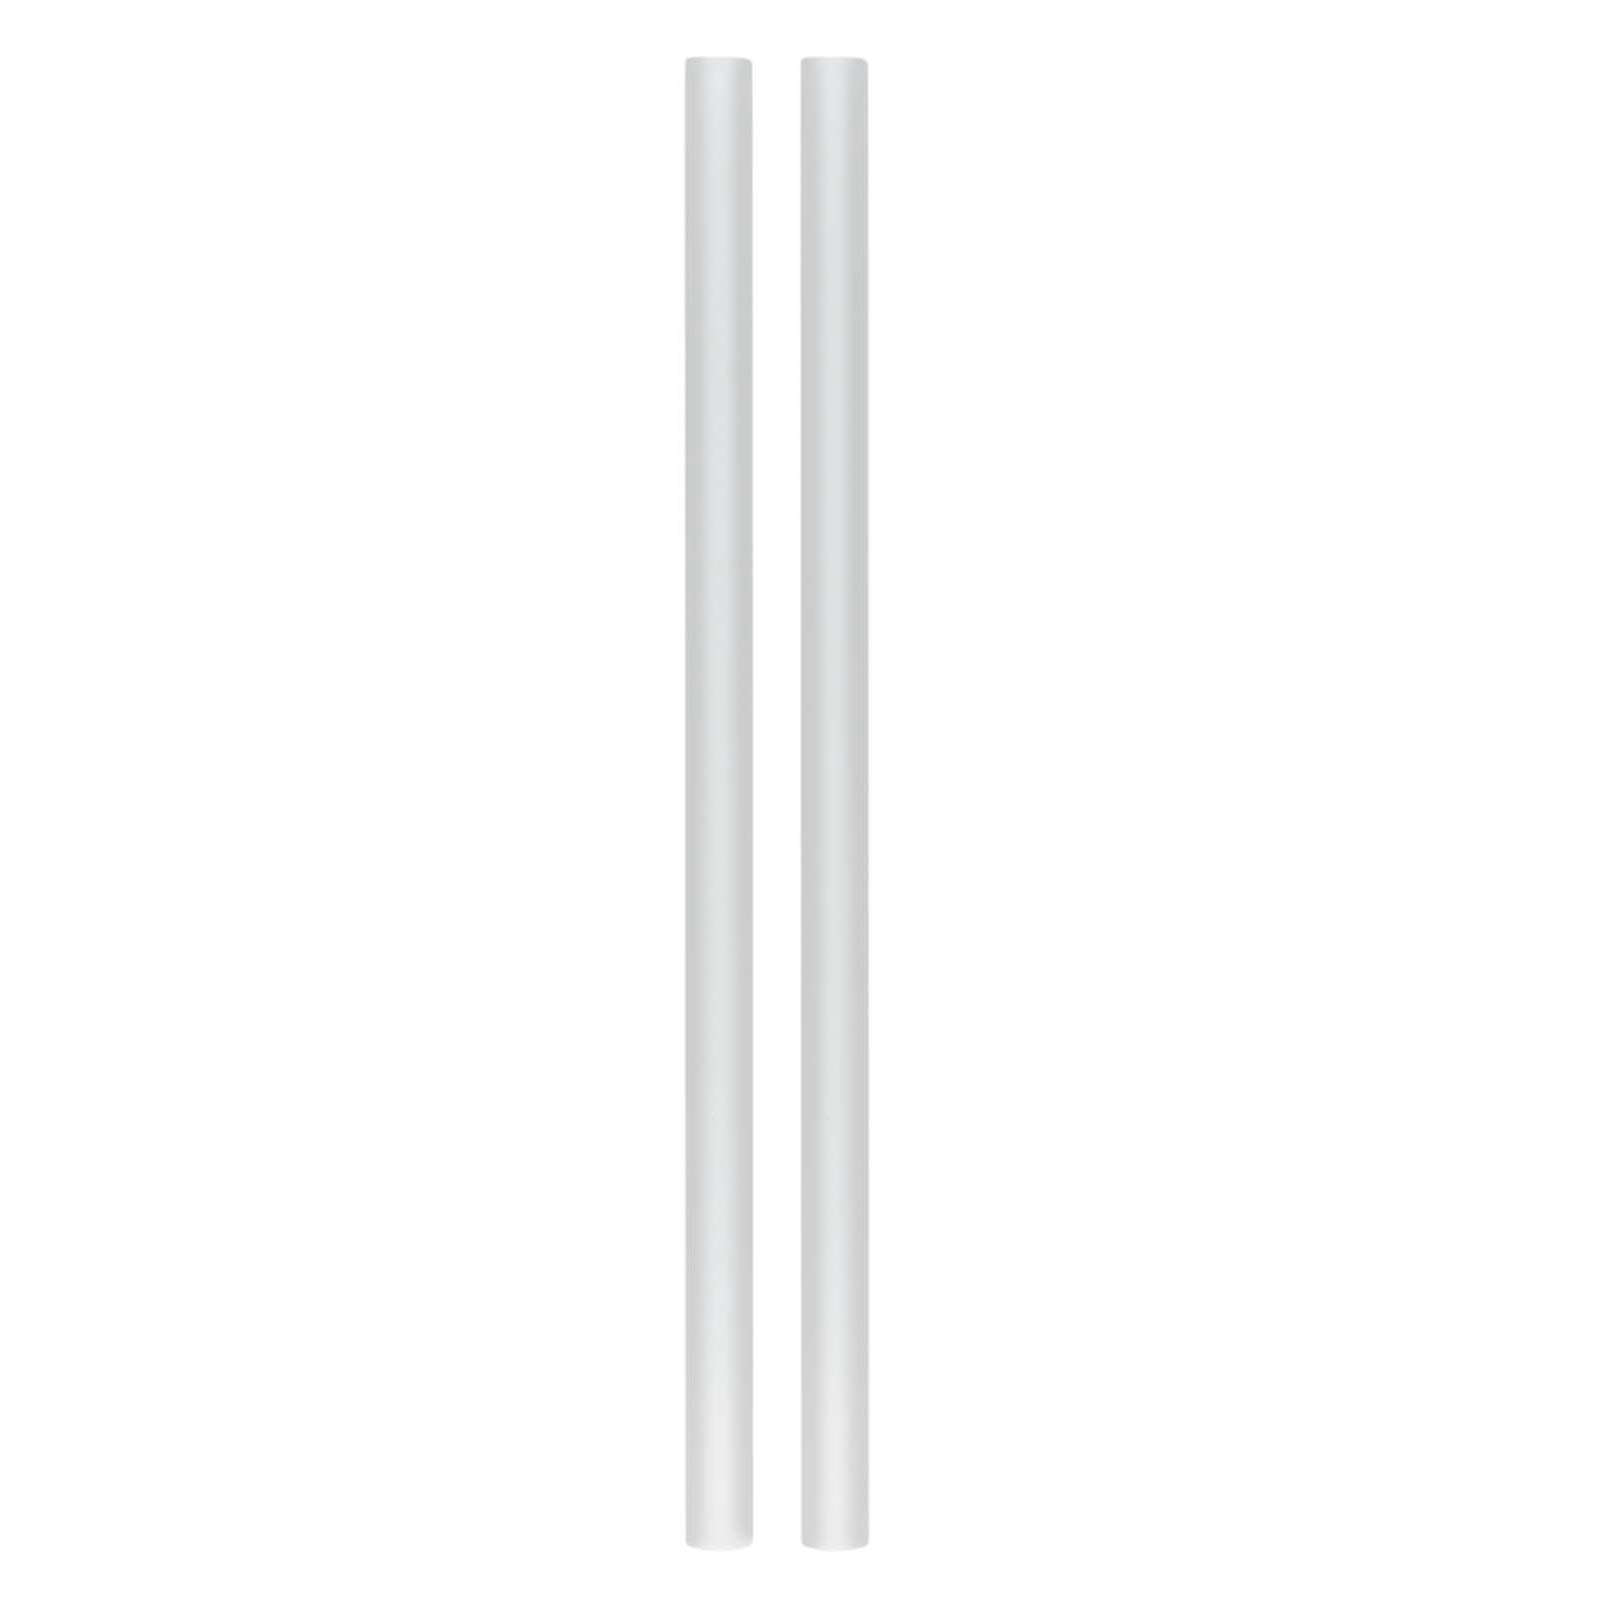 Replacement Straw for Atlantic Bottle 5.75 inch (2-pack)